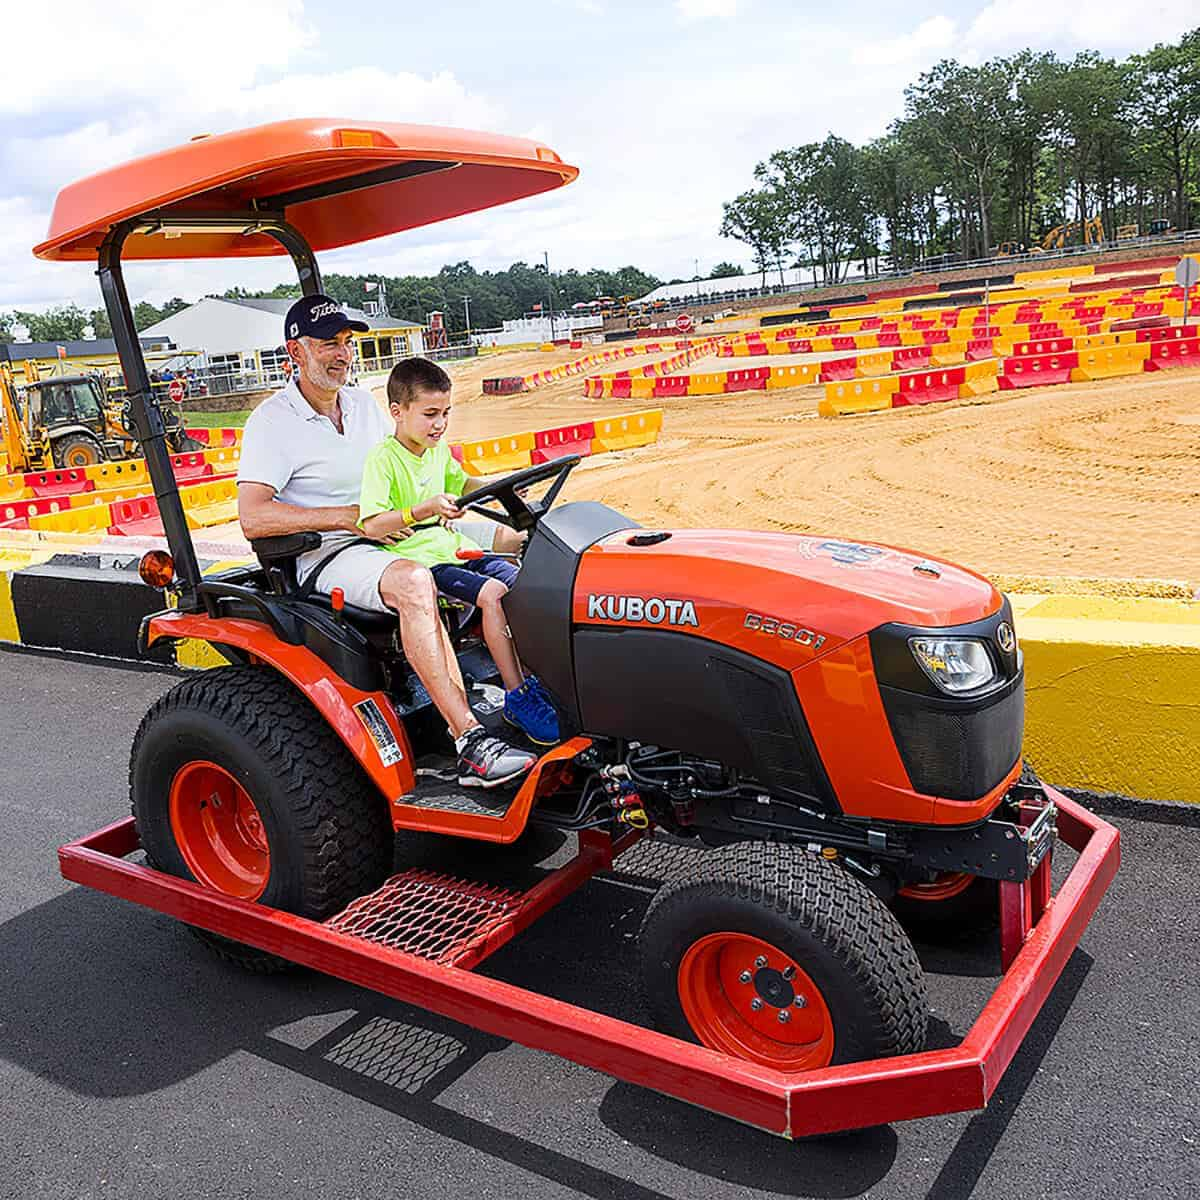 Kubota tractor ride with grandfather and grandson